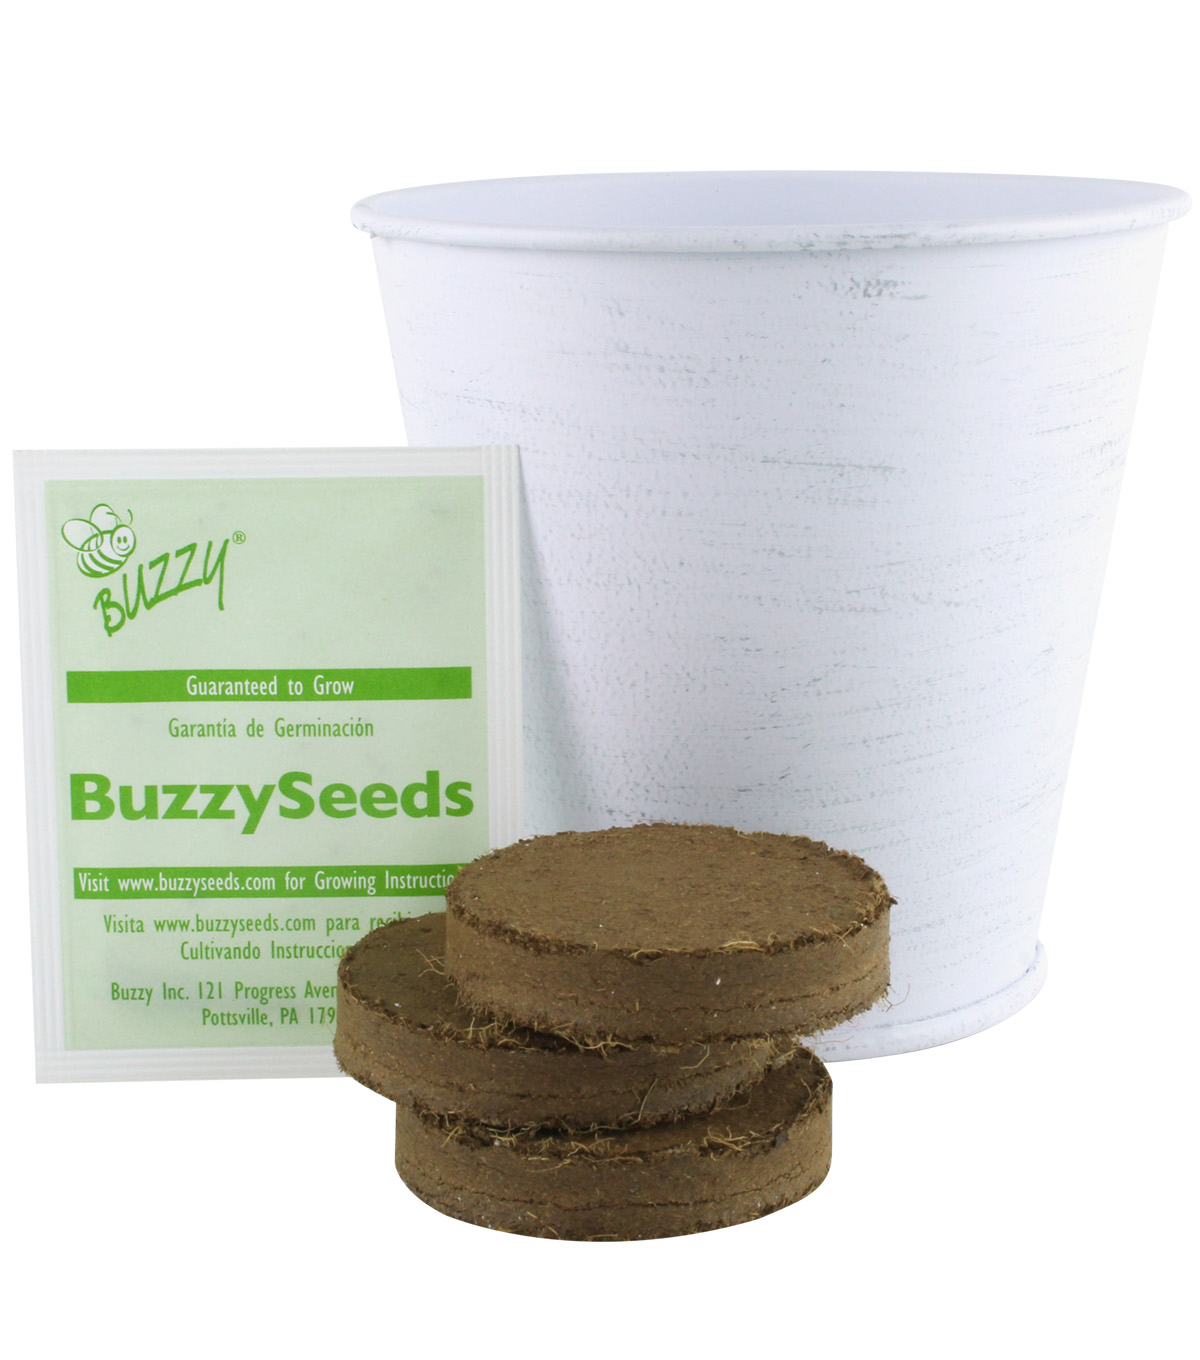 Buzzy Impatiens DIY Grow Kit with Whitewashed Metal Pail